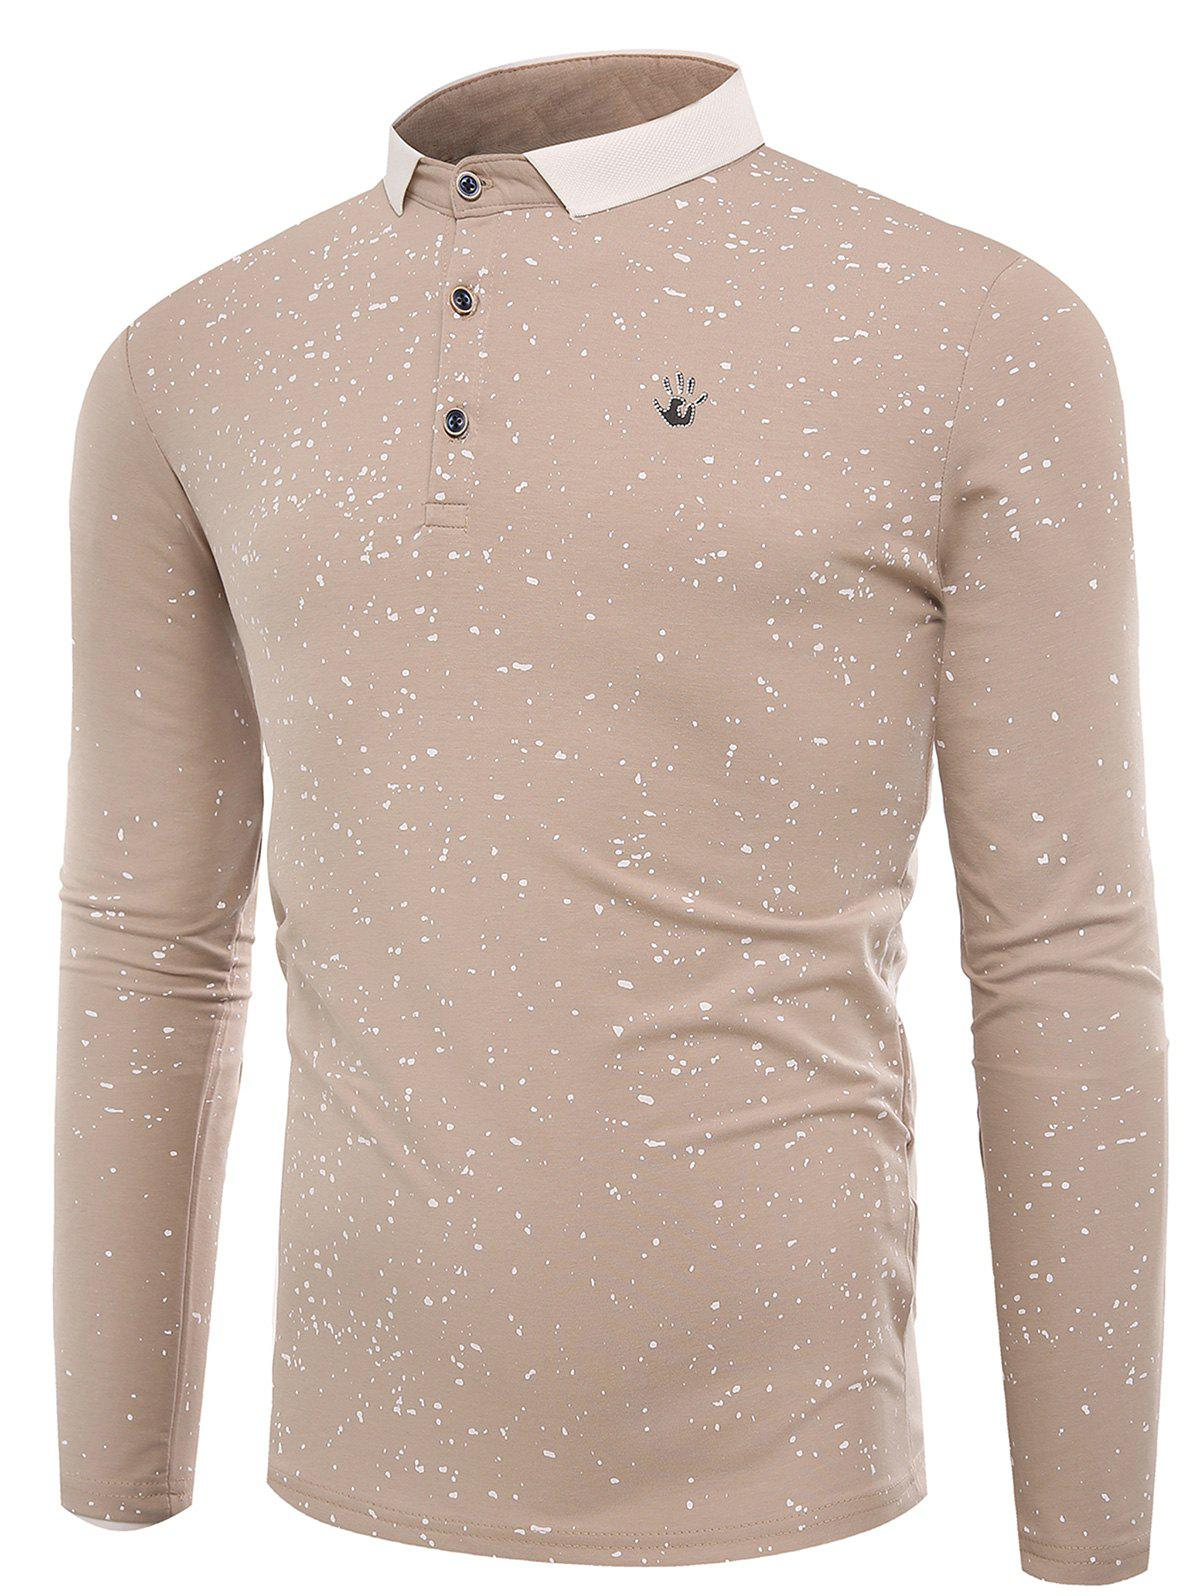 Best Splatter Paint Print Long Sleeve Polo T-shirt